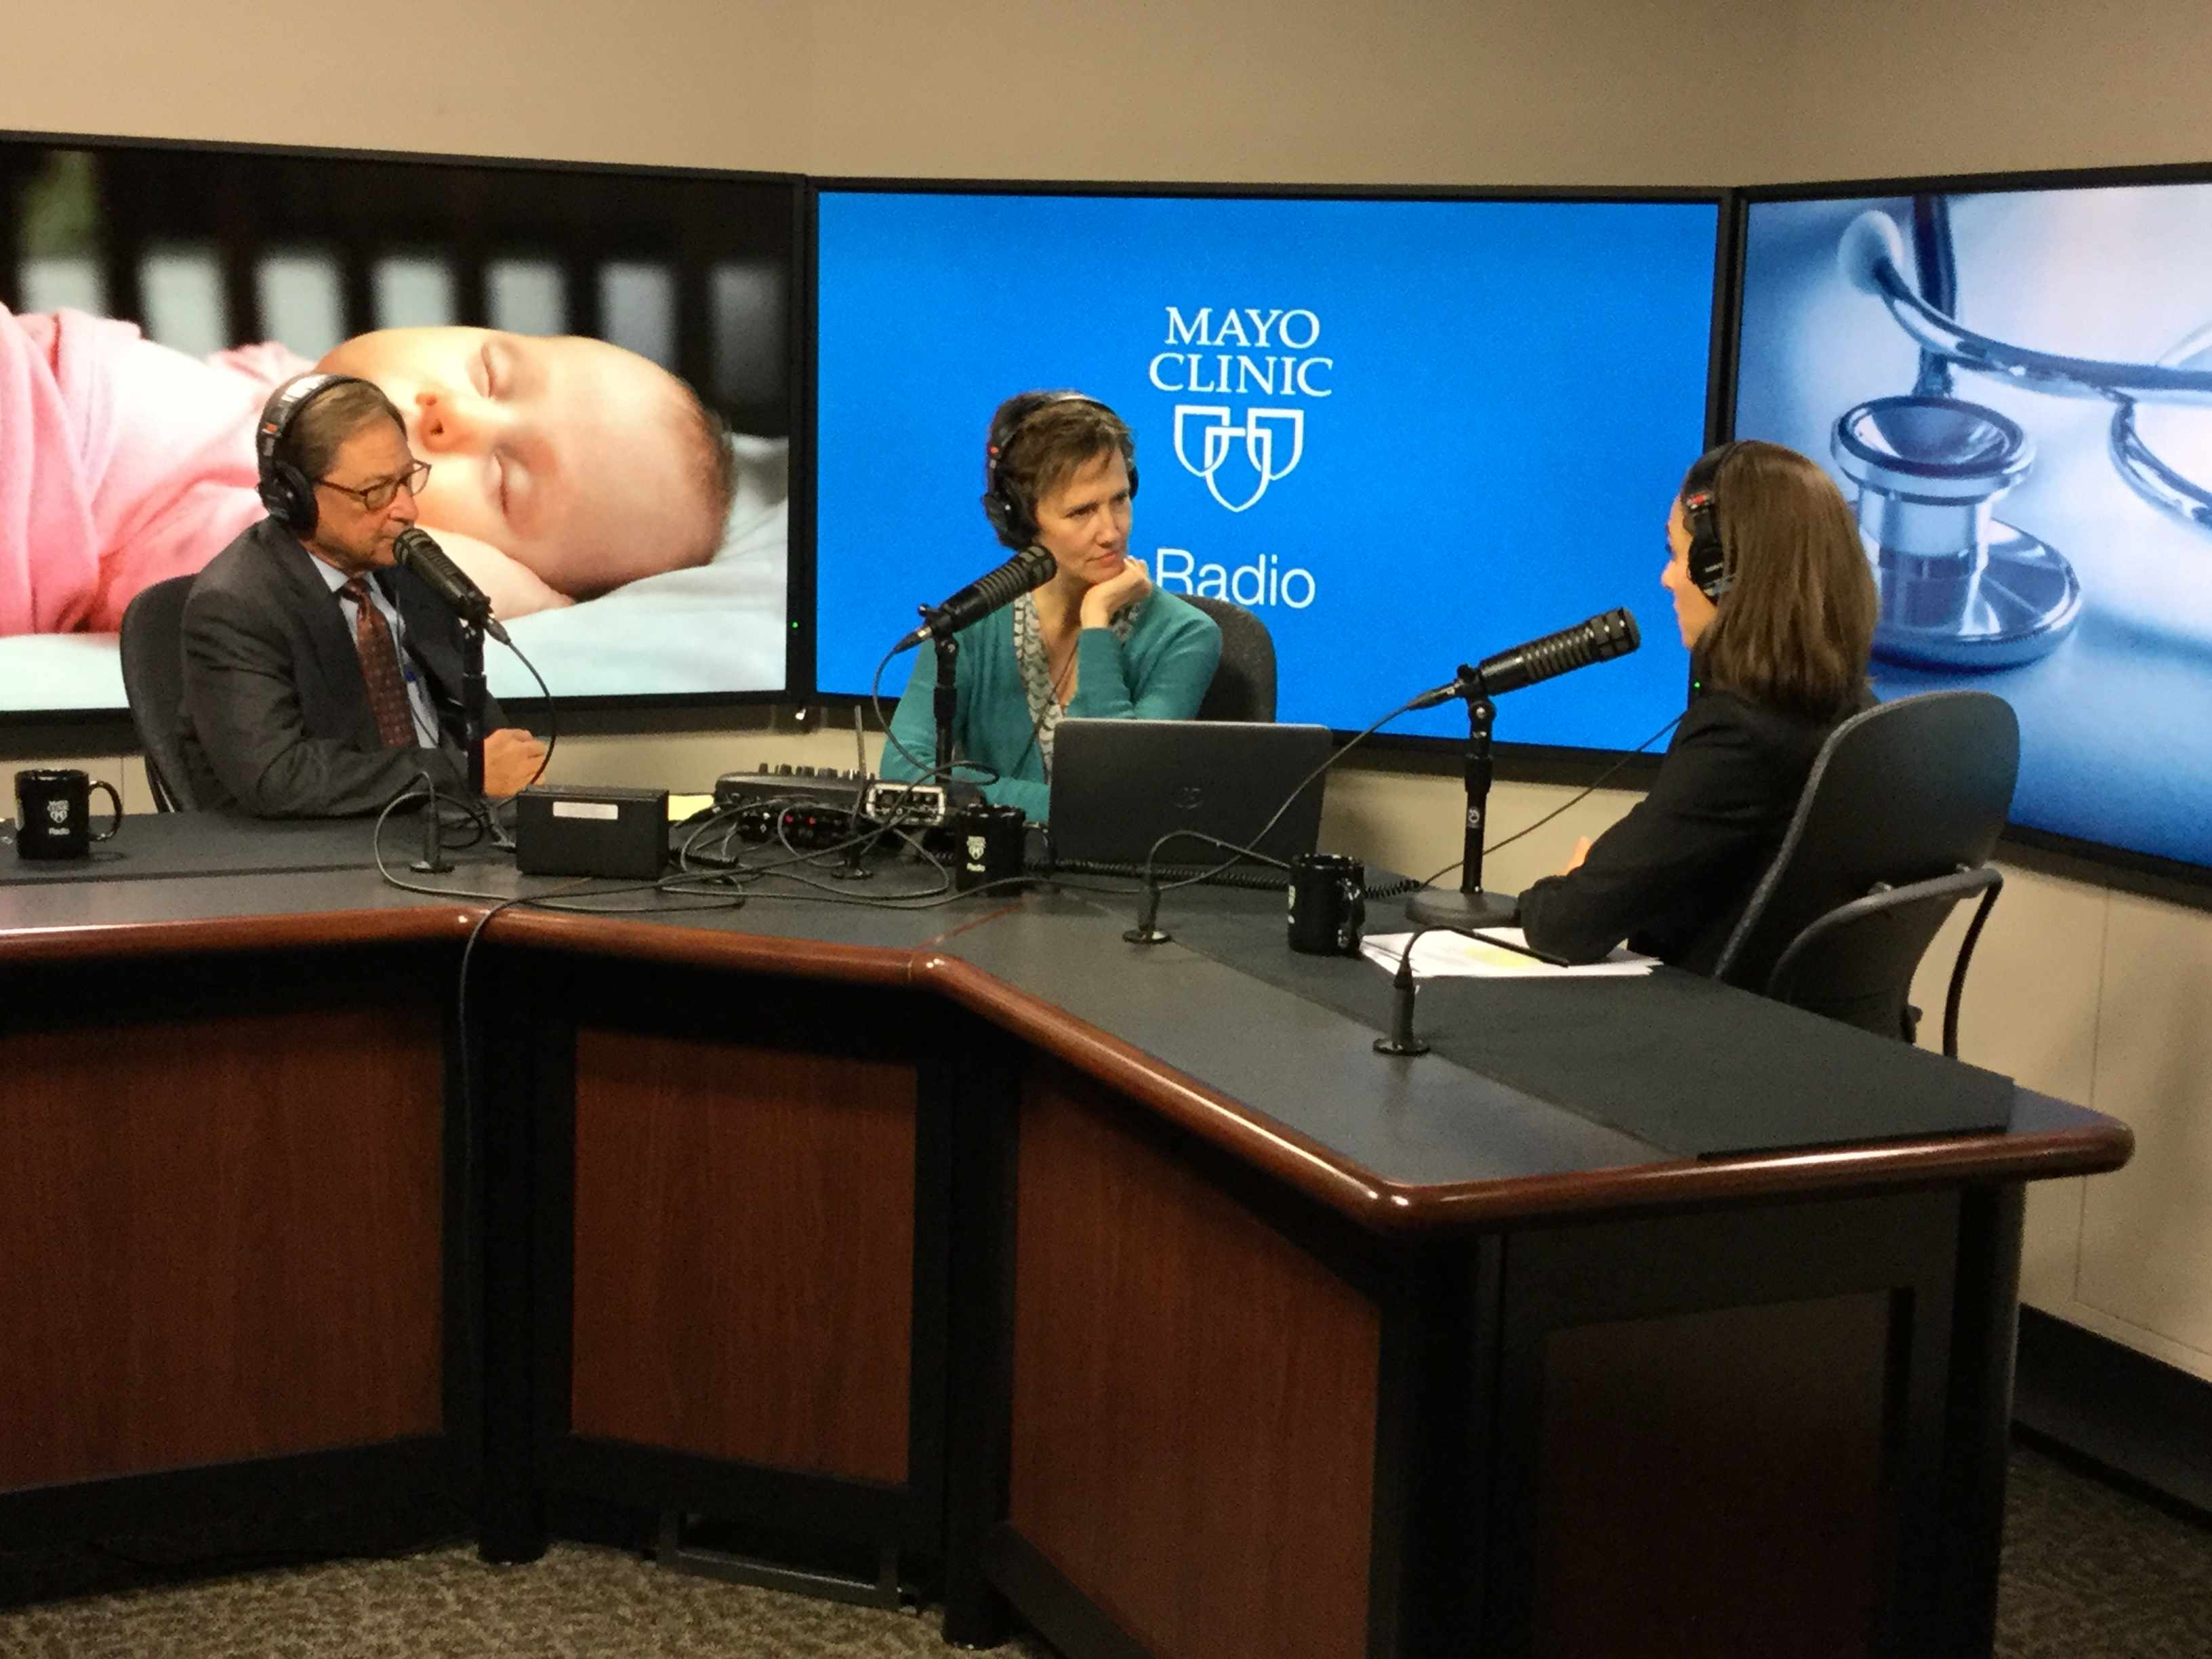 Dr. Esther Krych being interviewed on Mayo Clinic Radio